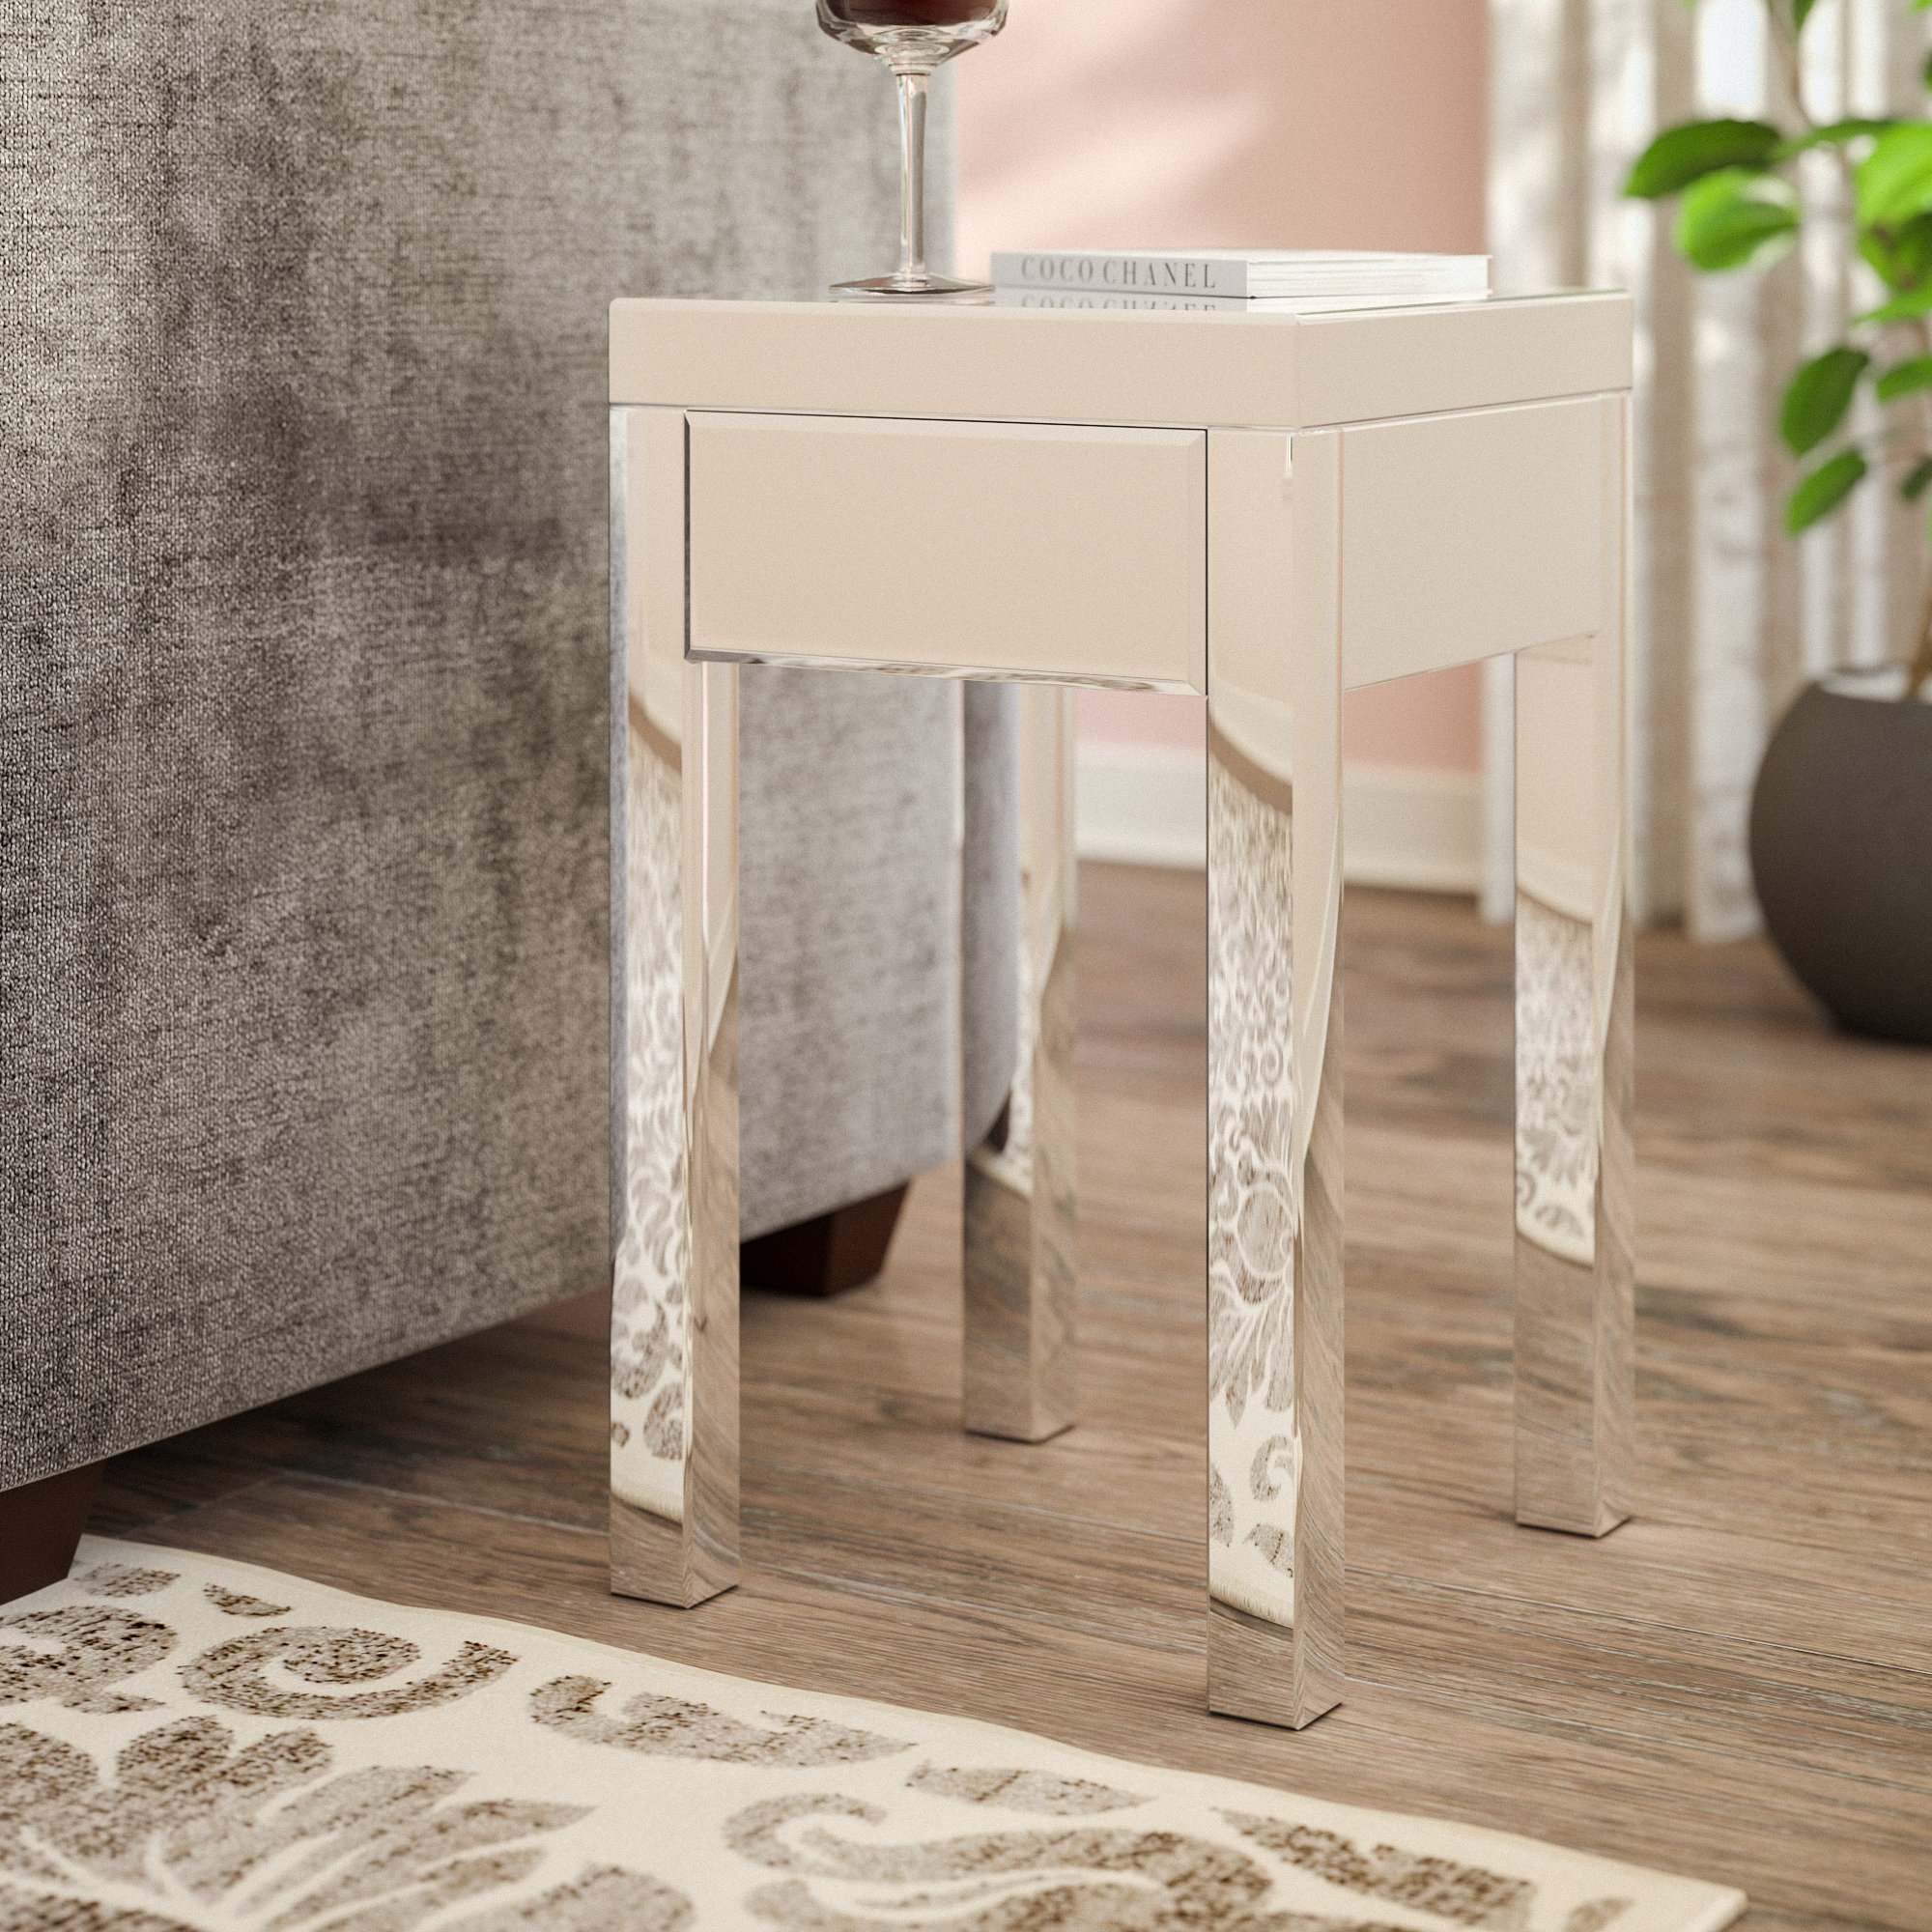 small mirrored accent table keels end with storage espresso round bedroom tables dining marble top breakfast tennis rubber center decor knobs and handles jcpenney decorative